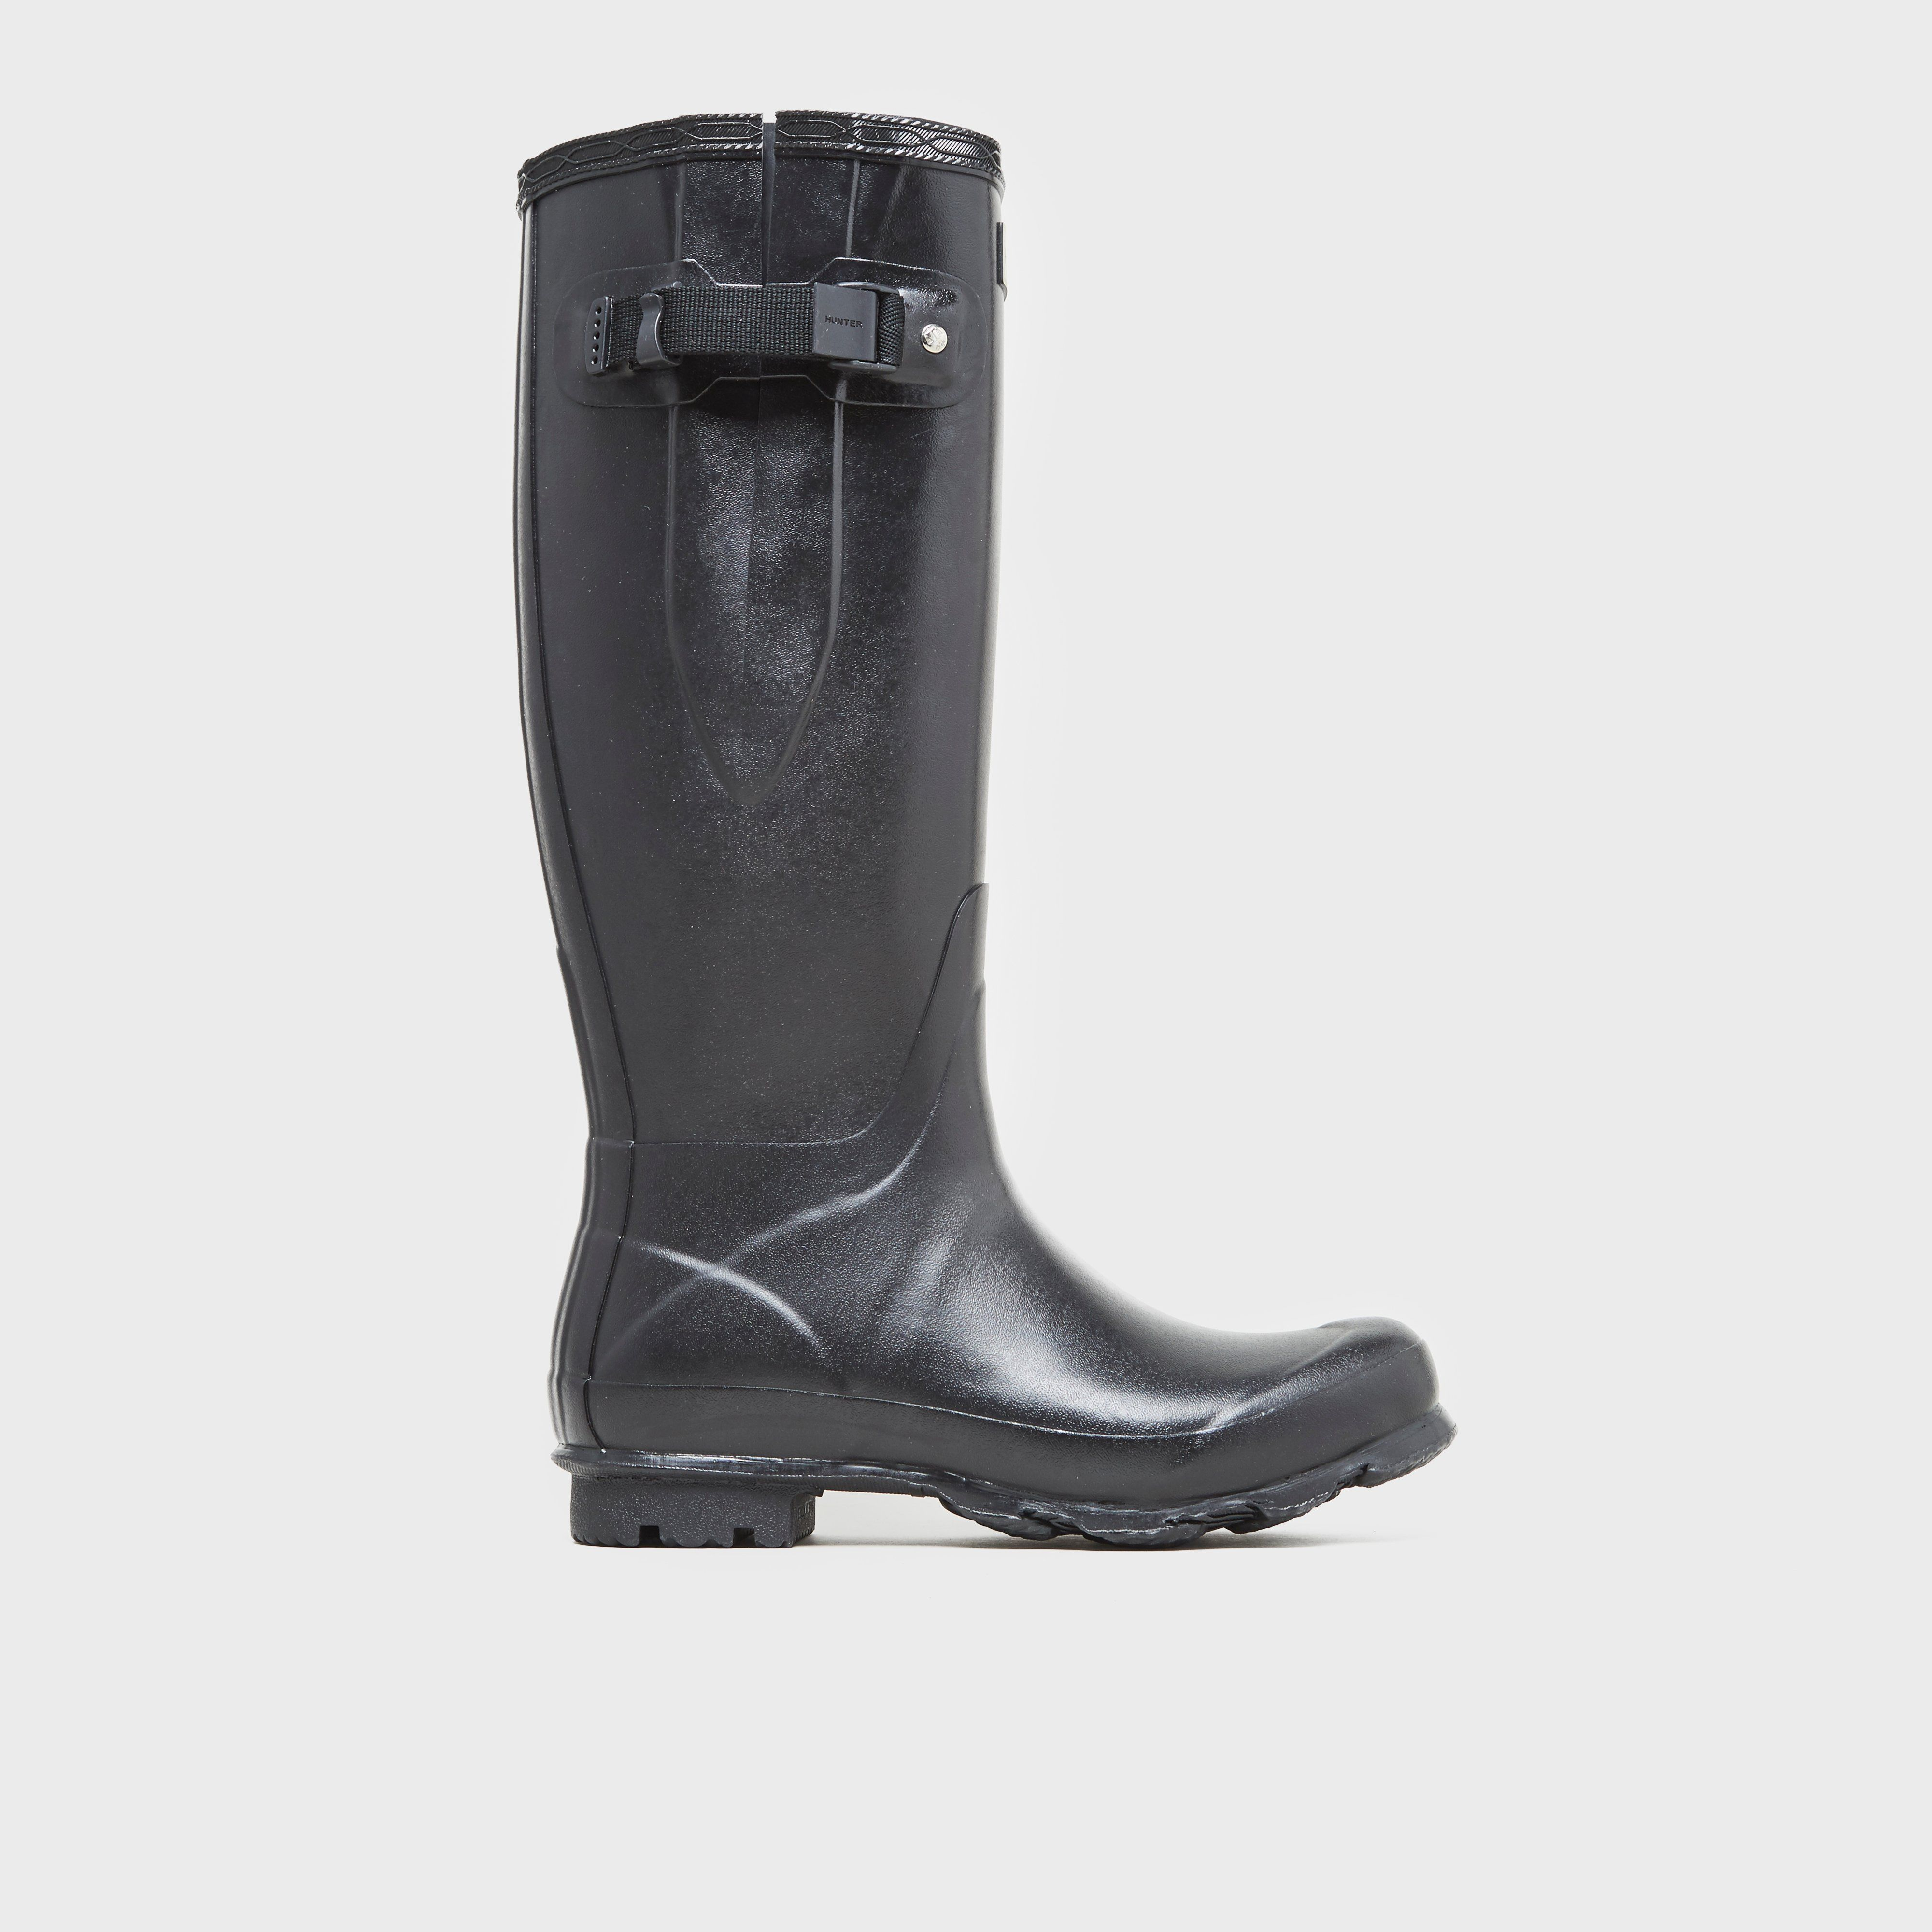 HUNTER Women's Norris Field Adjustable Wellington Boots